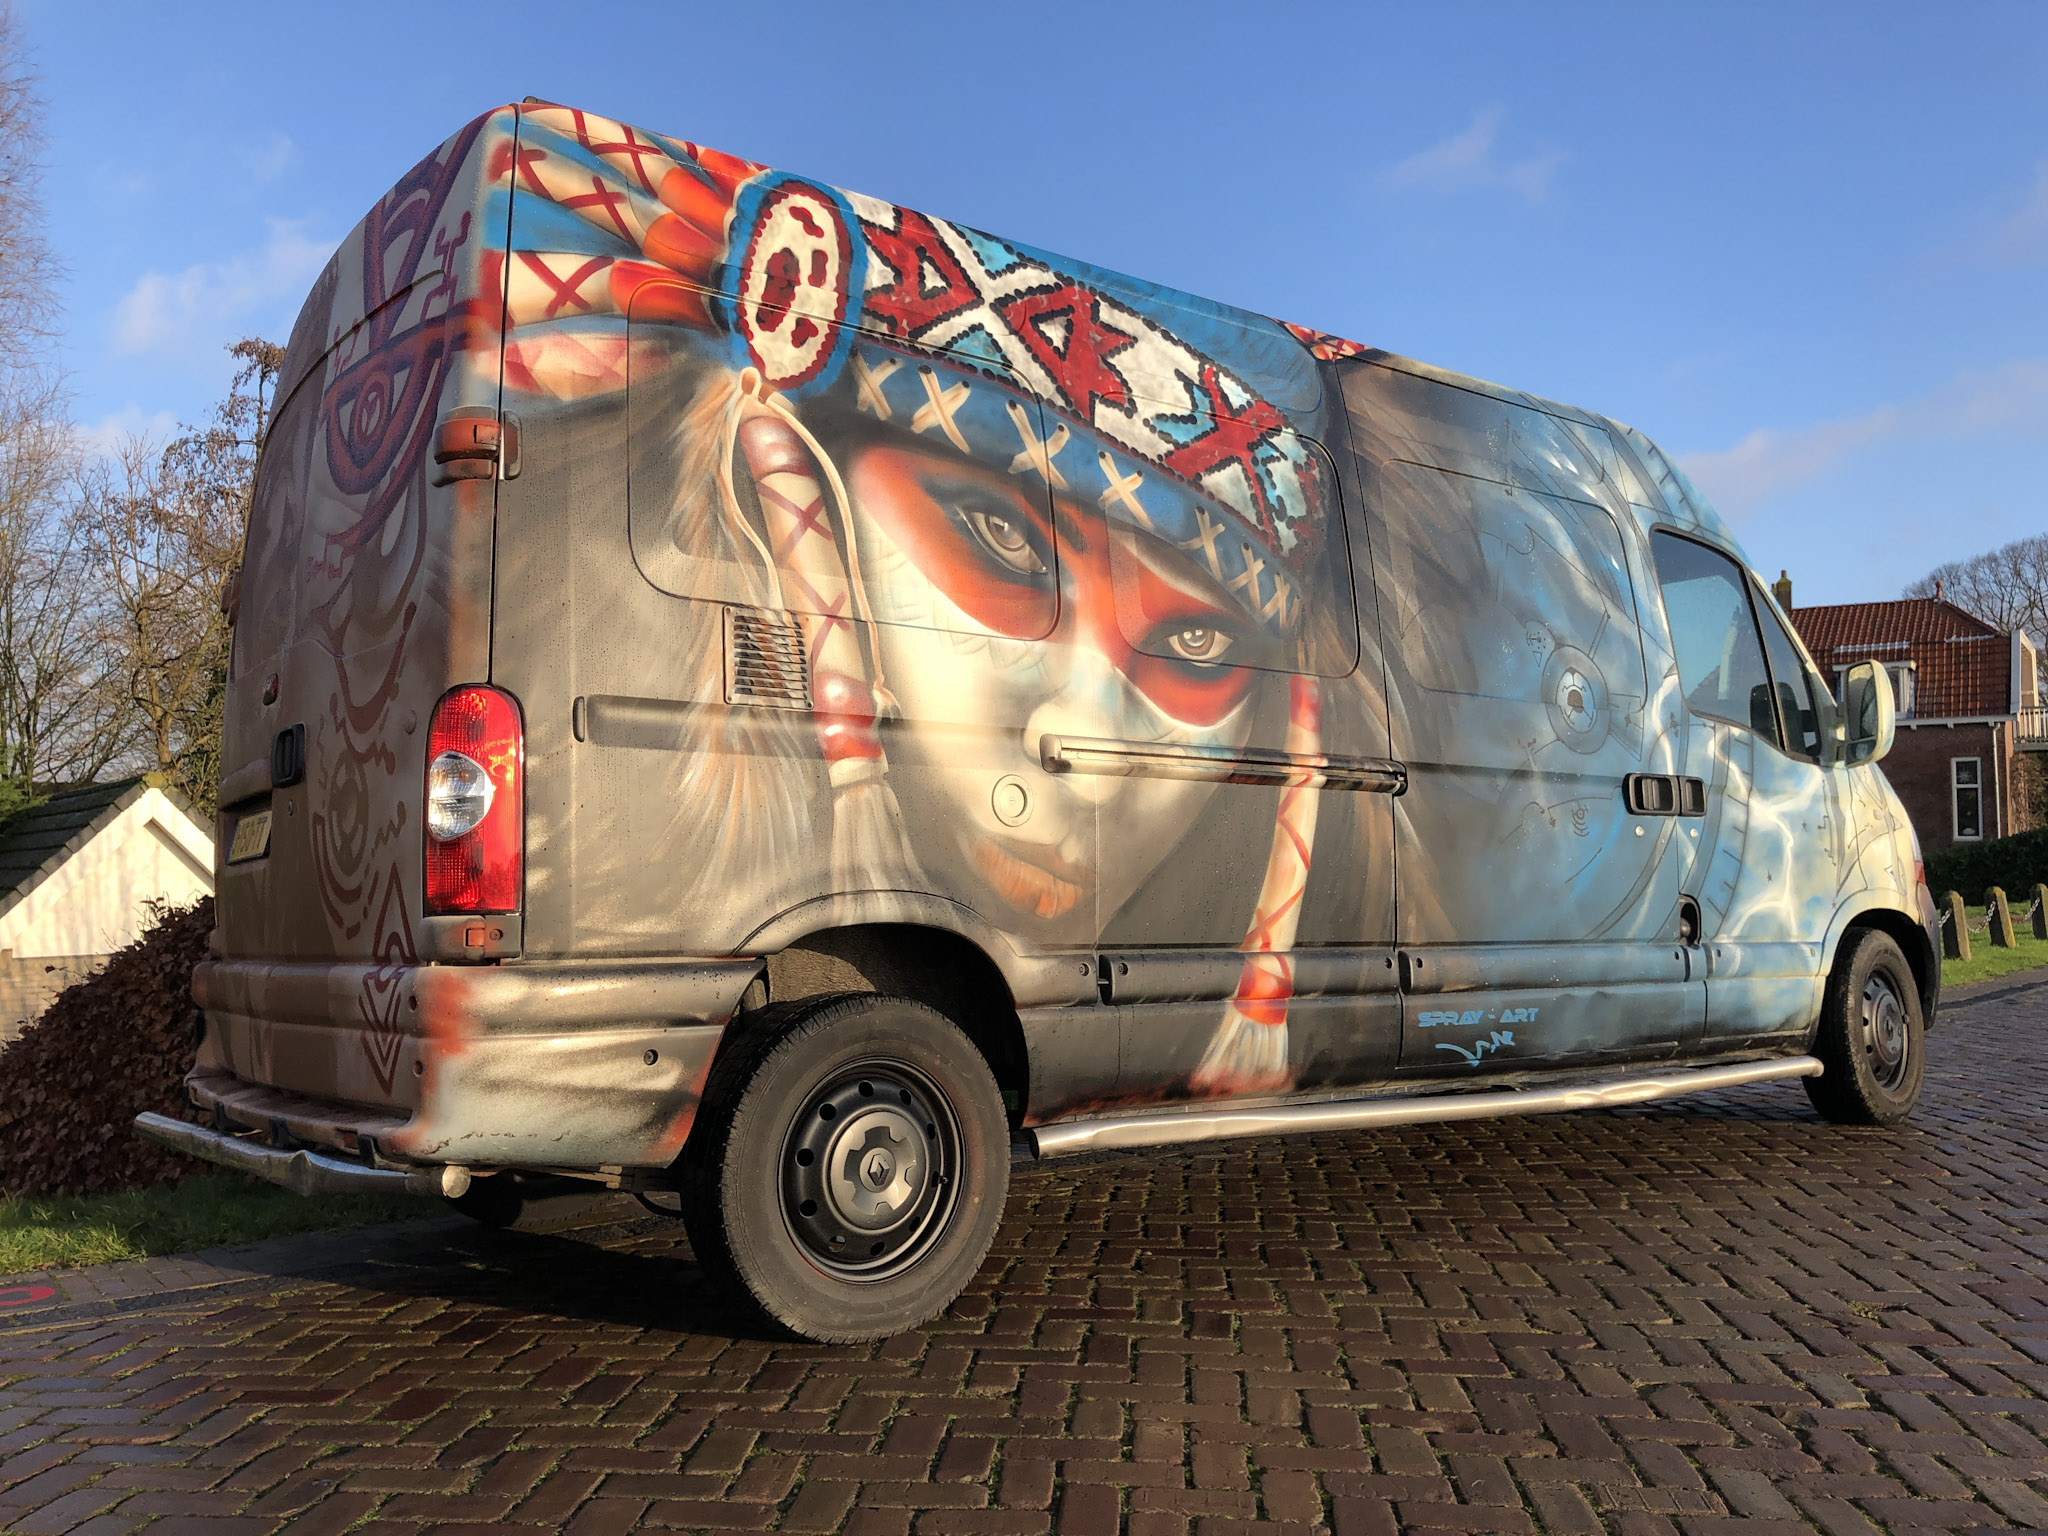 Graffiti Campers